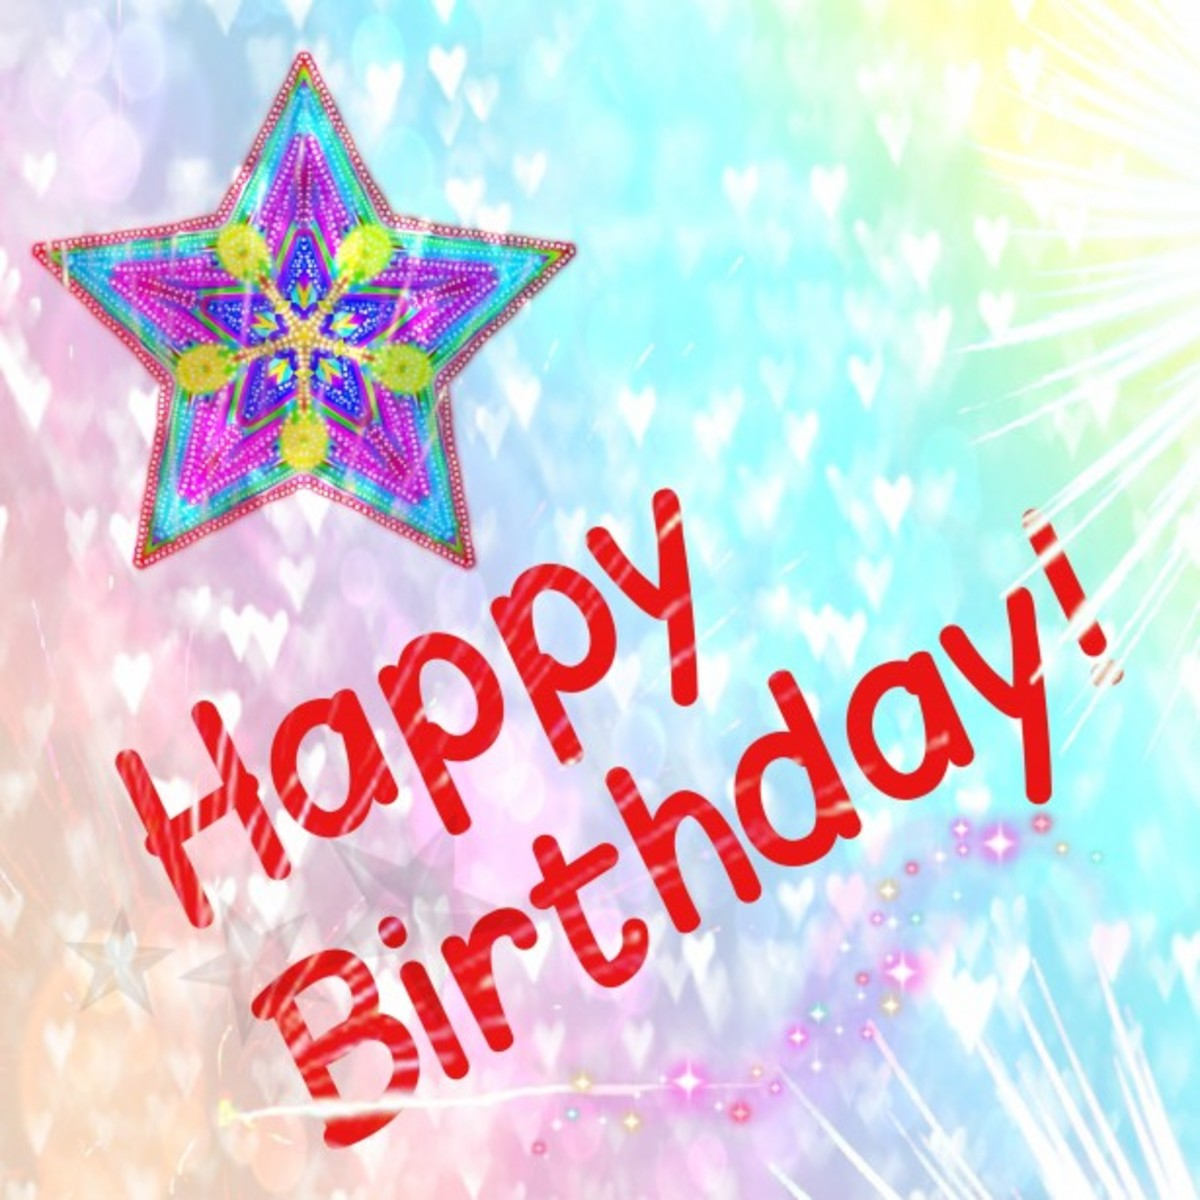 Happy Birthday! with Star, Sunshine and Hearts